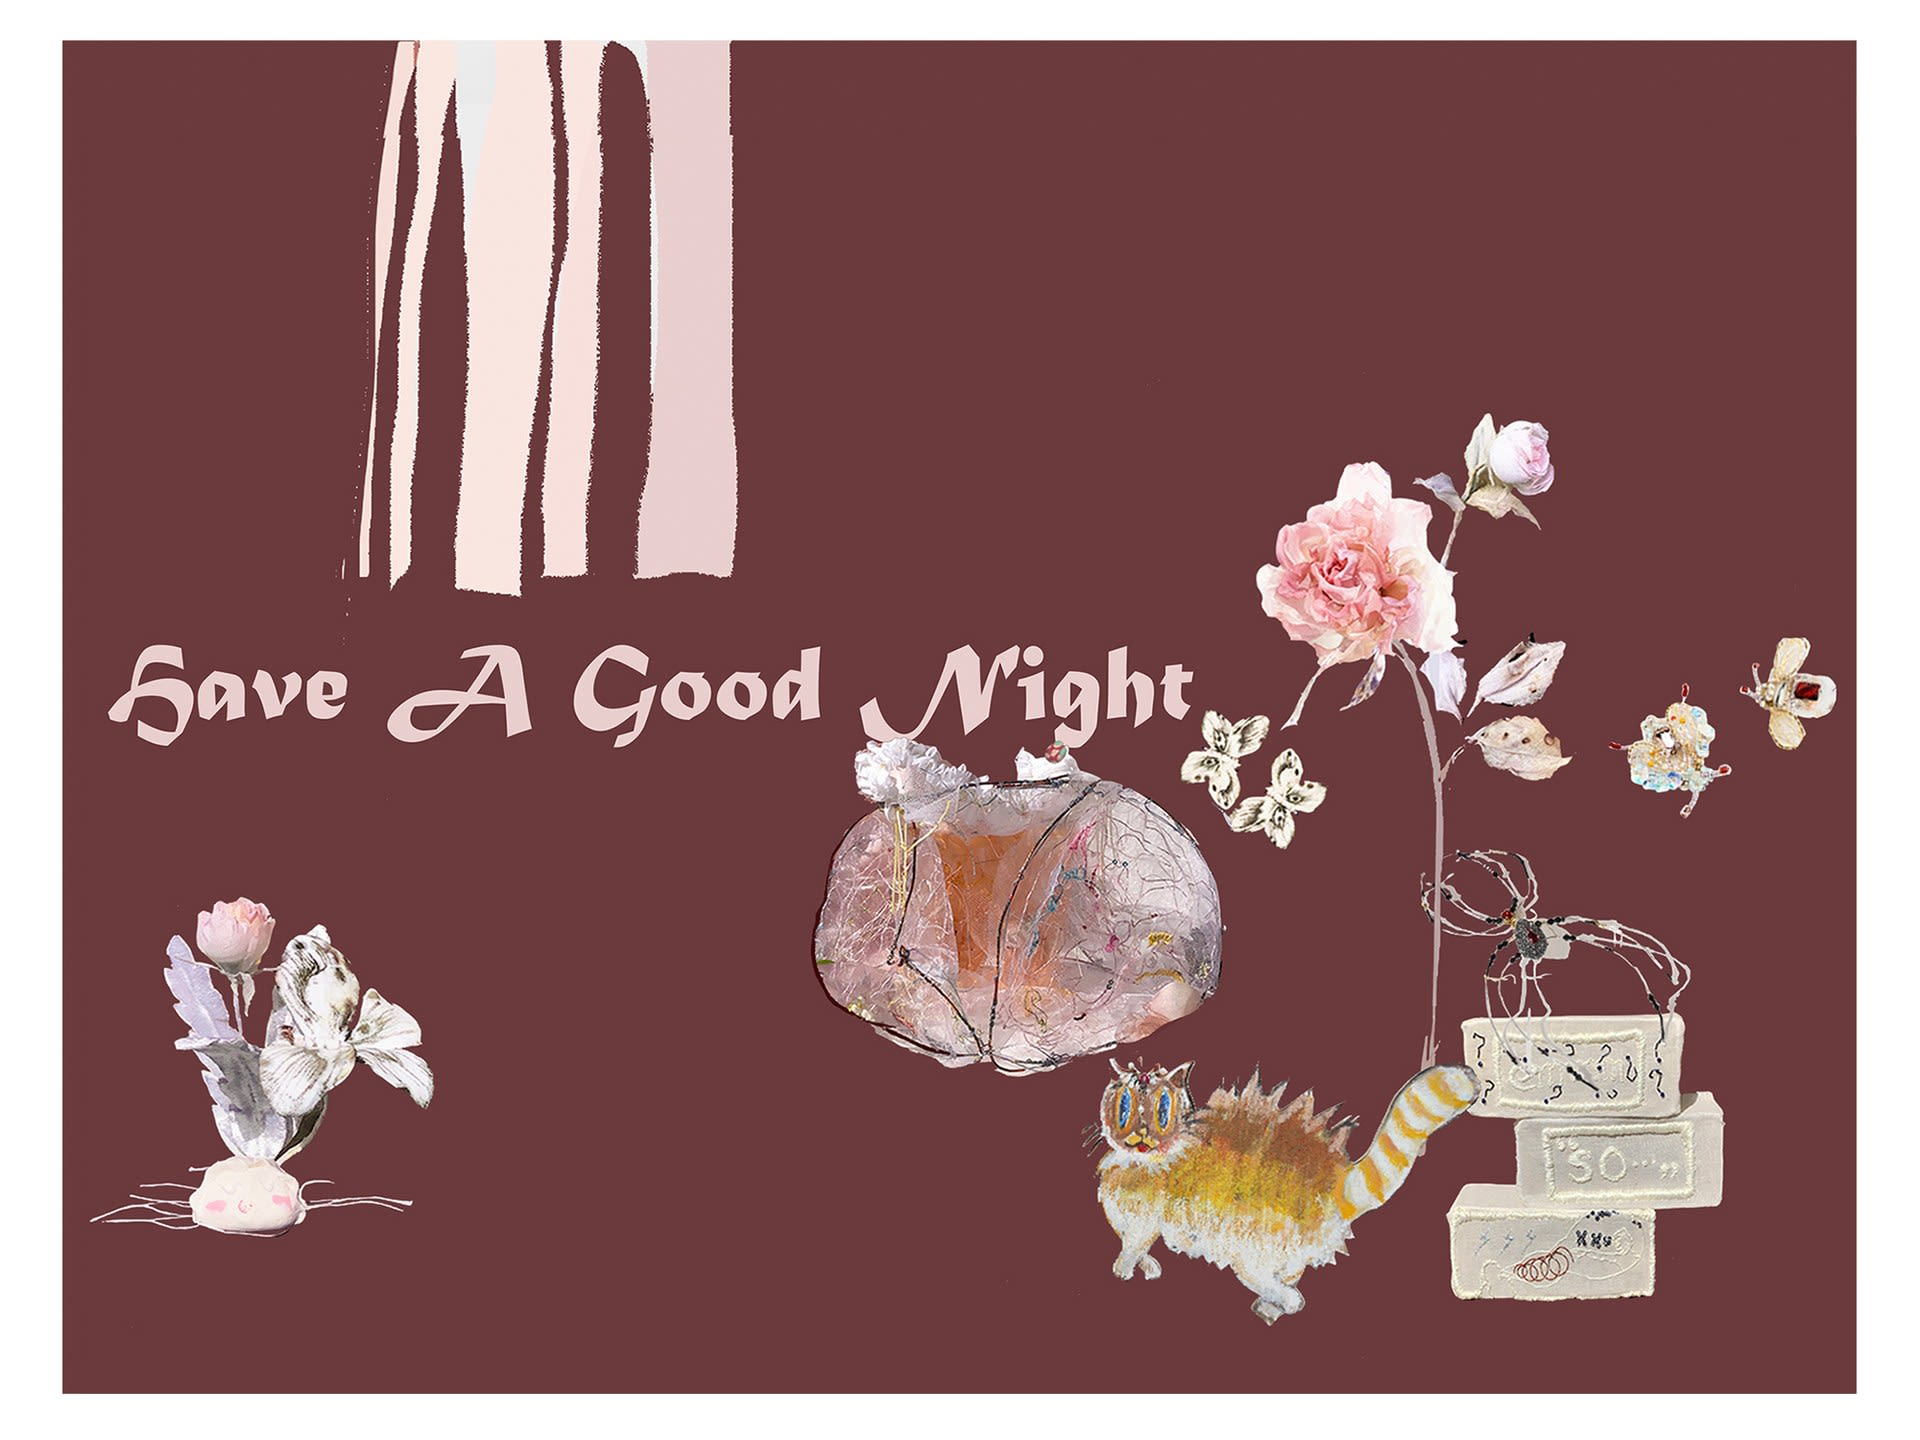 The rendering of Have A Good Night